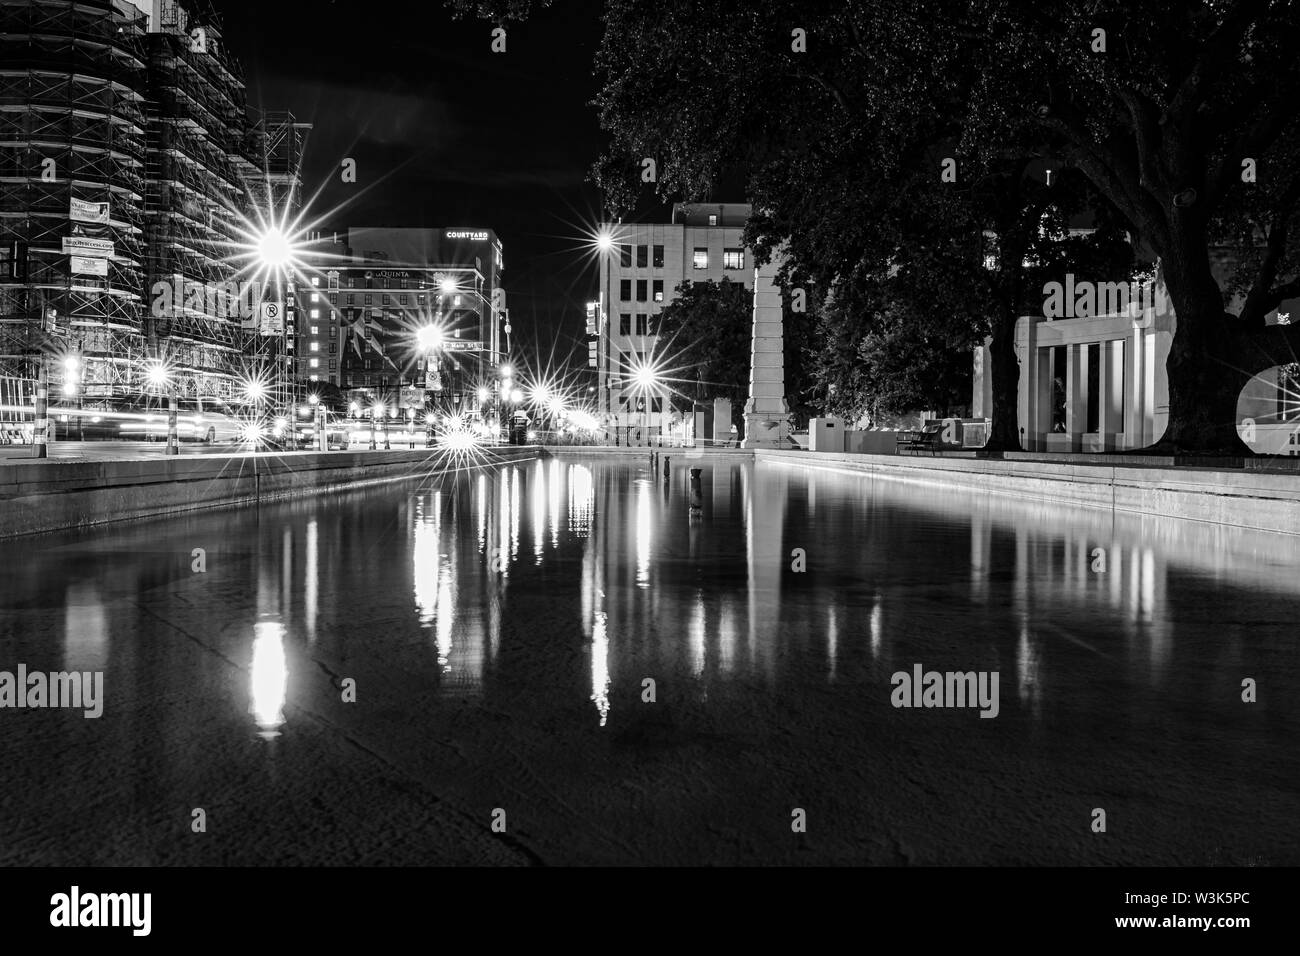 JFK Memorial Plaza Dealey Plaza in downtown Dallas at night. Water fountain. Triple Fountain at JFK Assassination Memorial Dallas, TX. Stock Photo